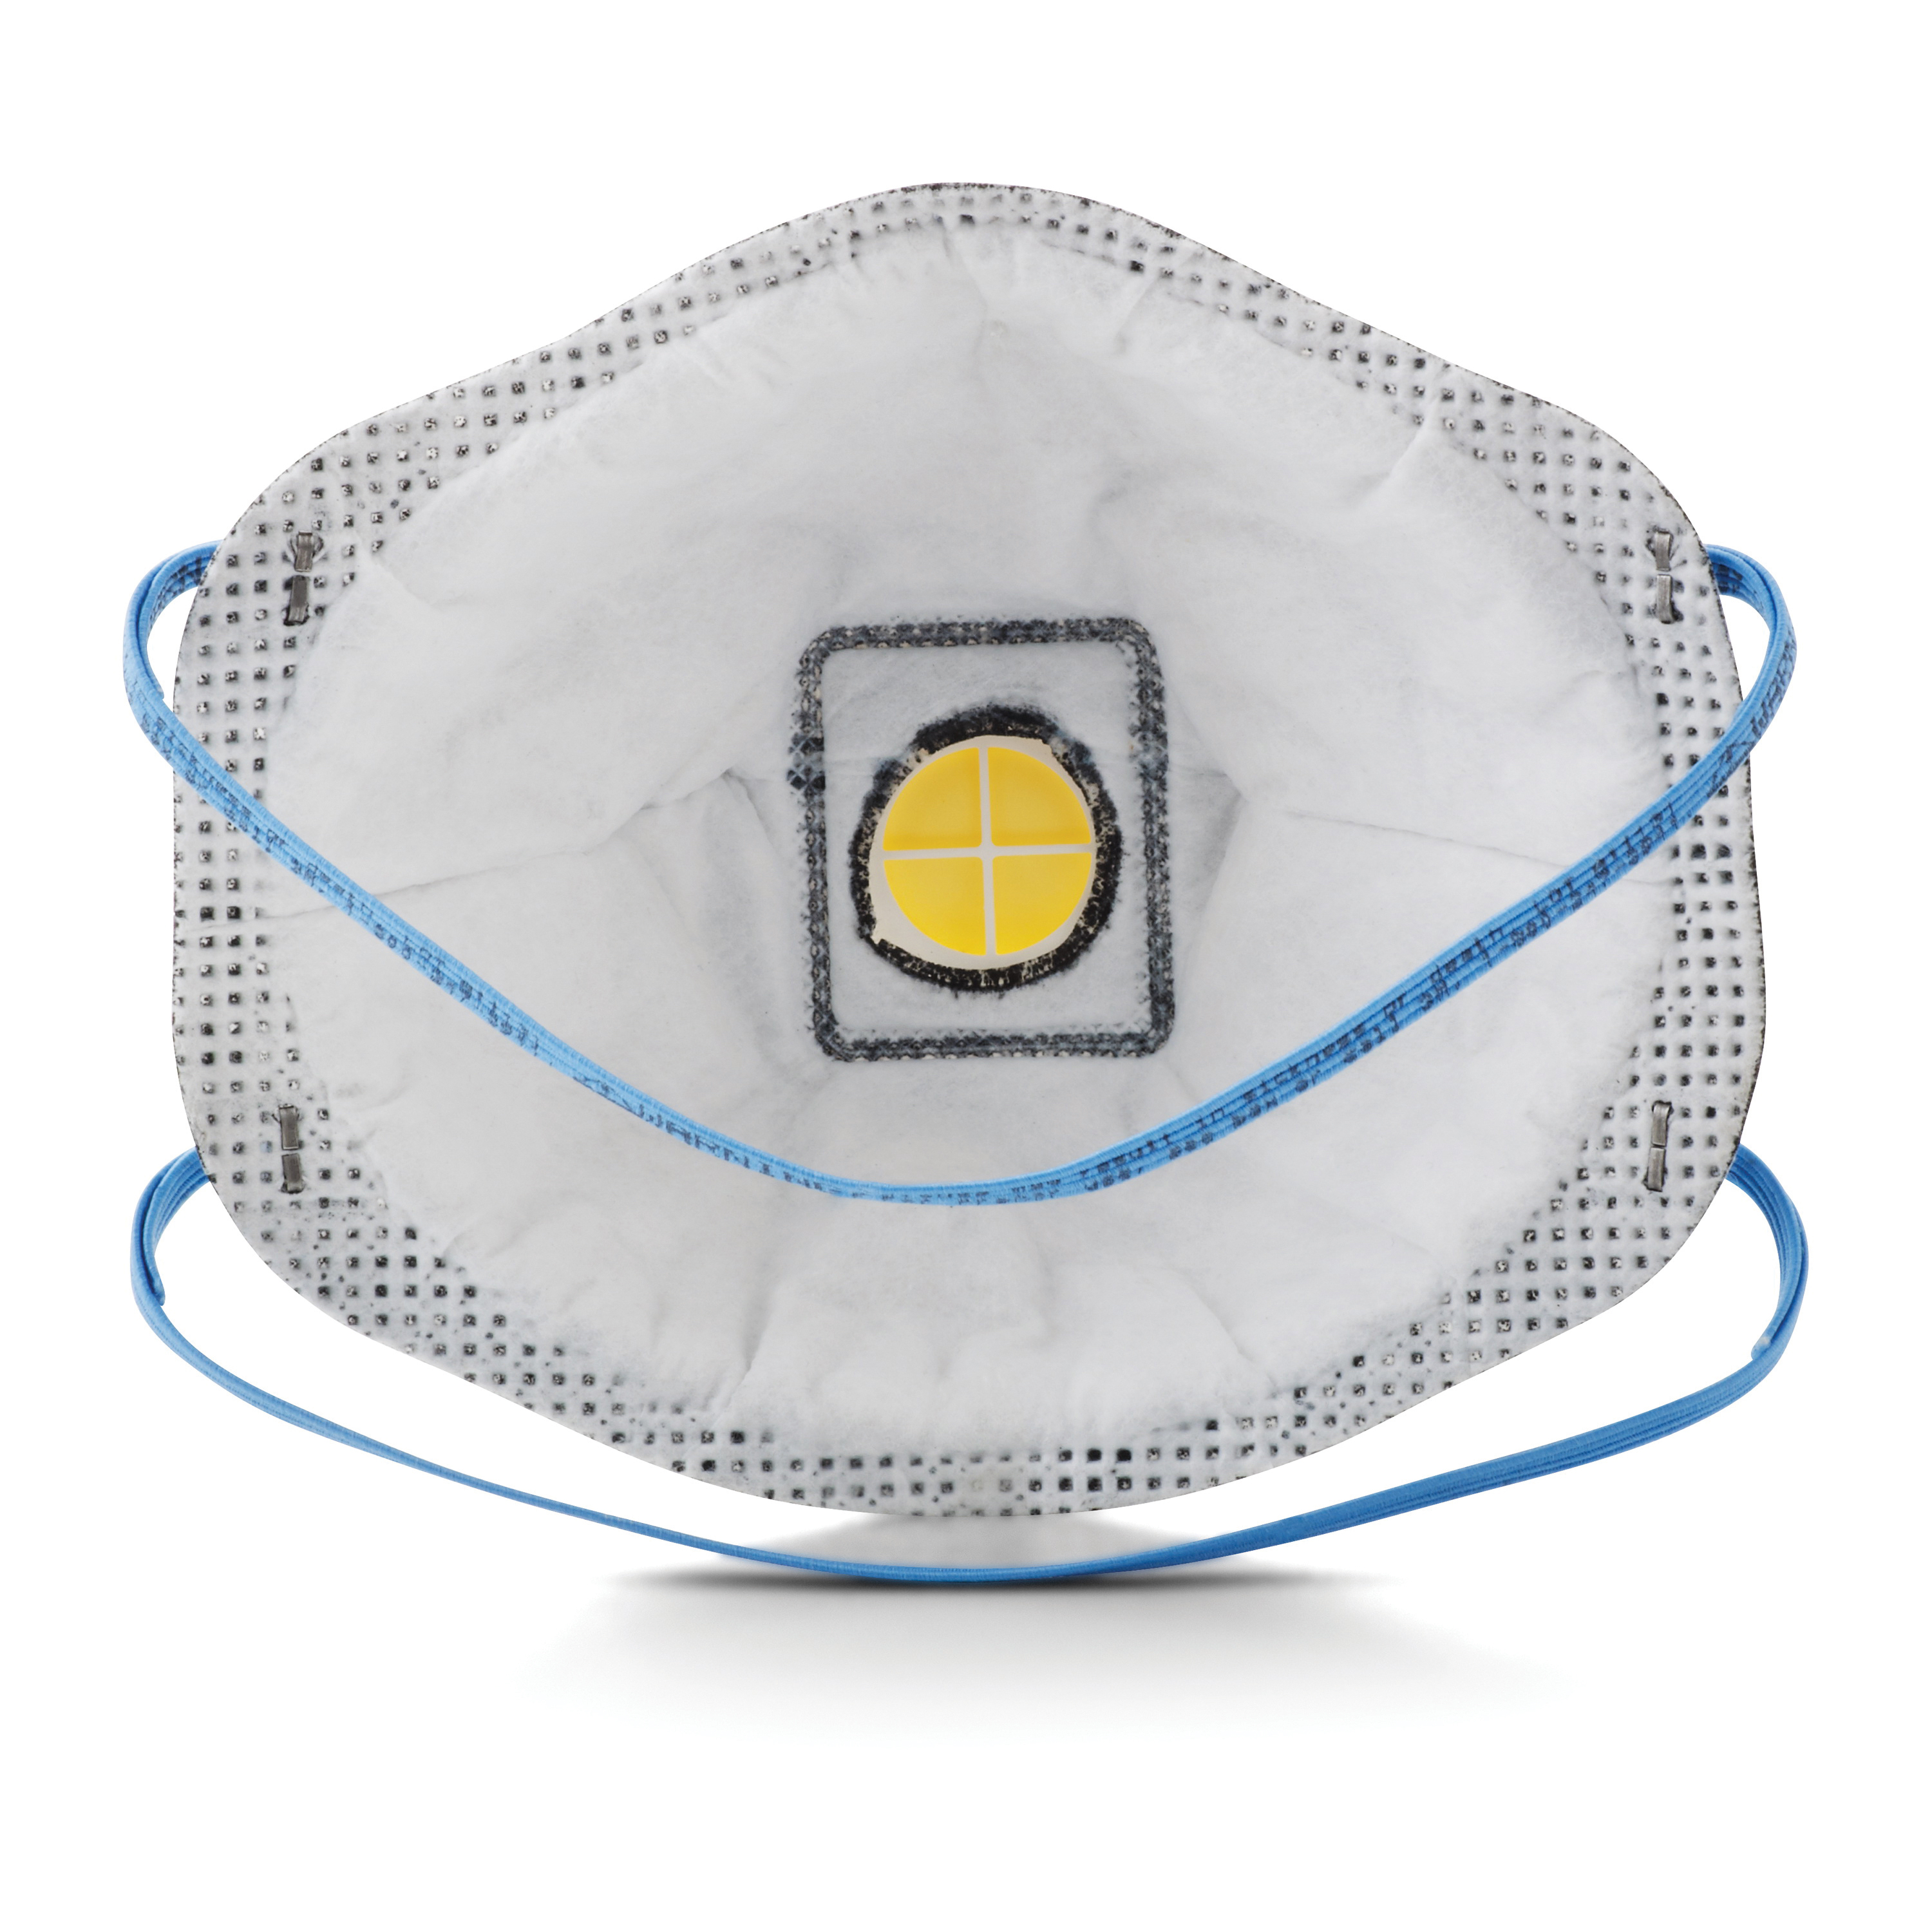 3M™ 8511 Disposable Particulate Respirator With Cool Flow™ Exhalation Valve - STOCK RESTRICTED - Due to high demand for N95 and other models of disposable respirators, we may be unable to fulfill any orders for these products regardless of stock status indicated on our website.